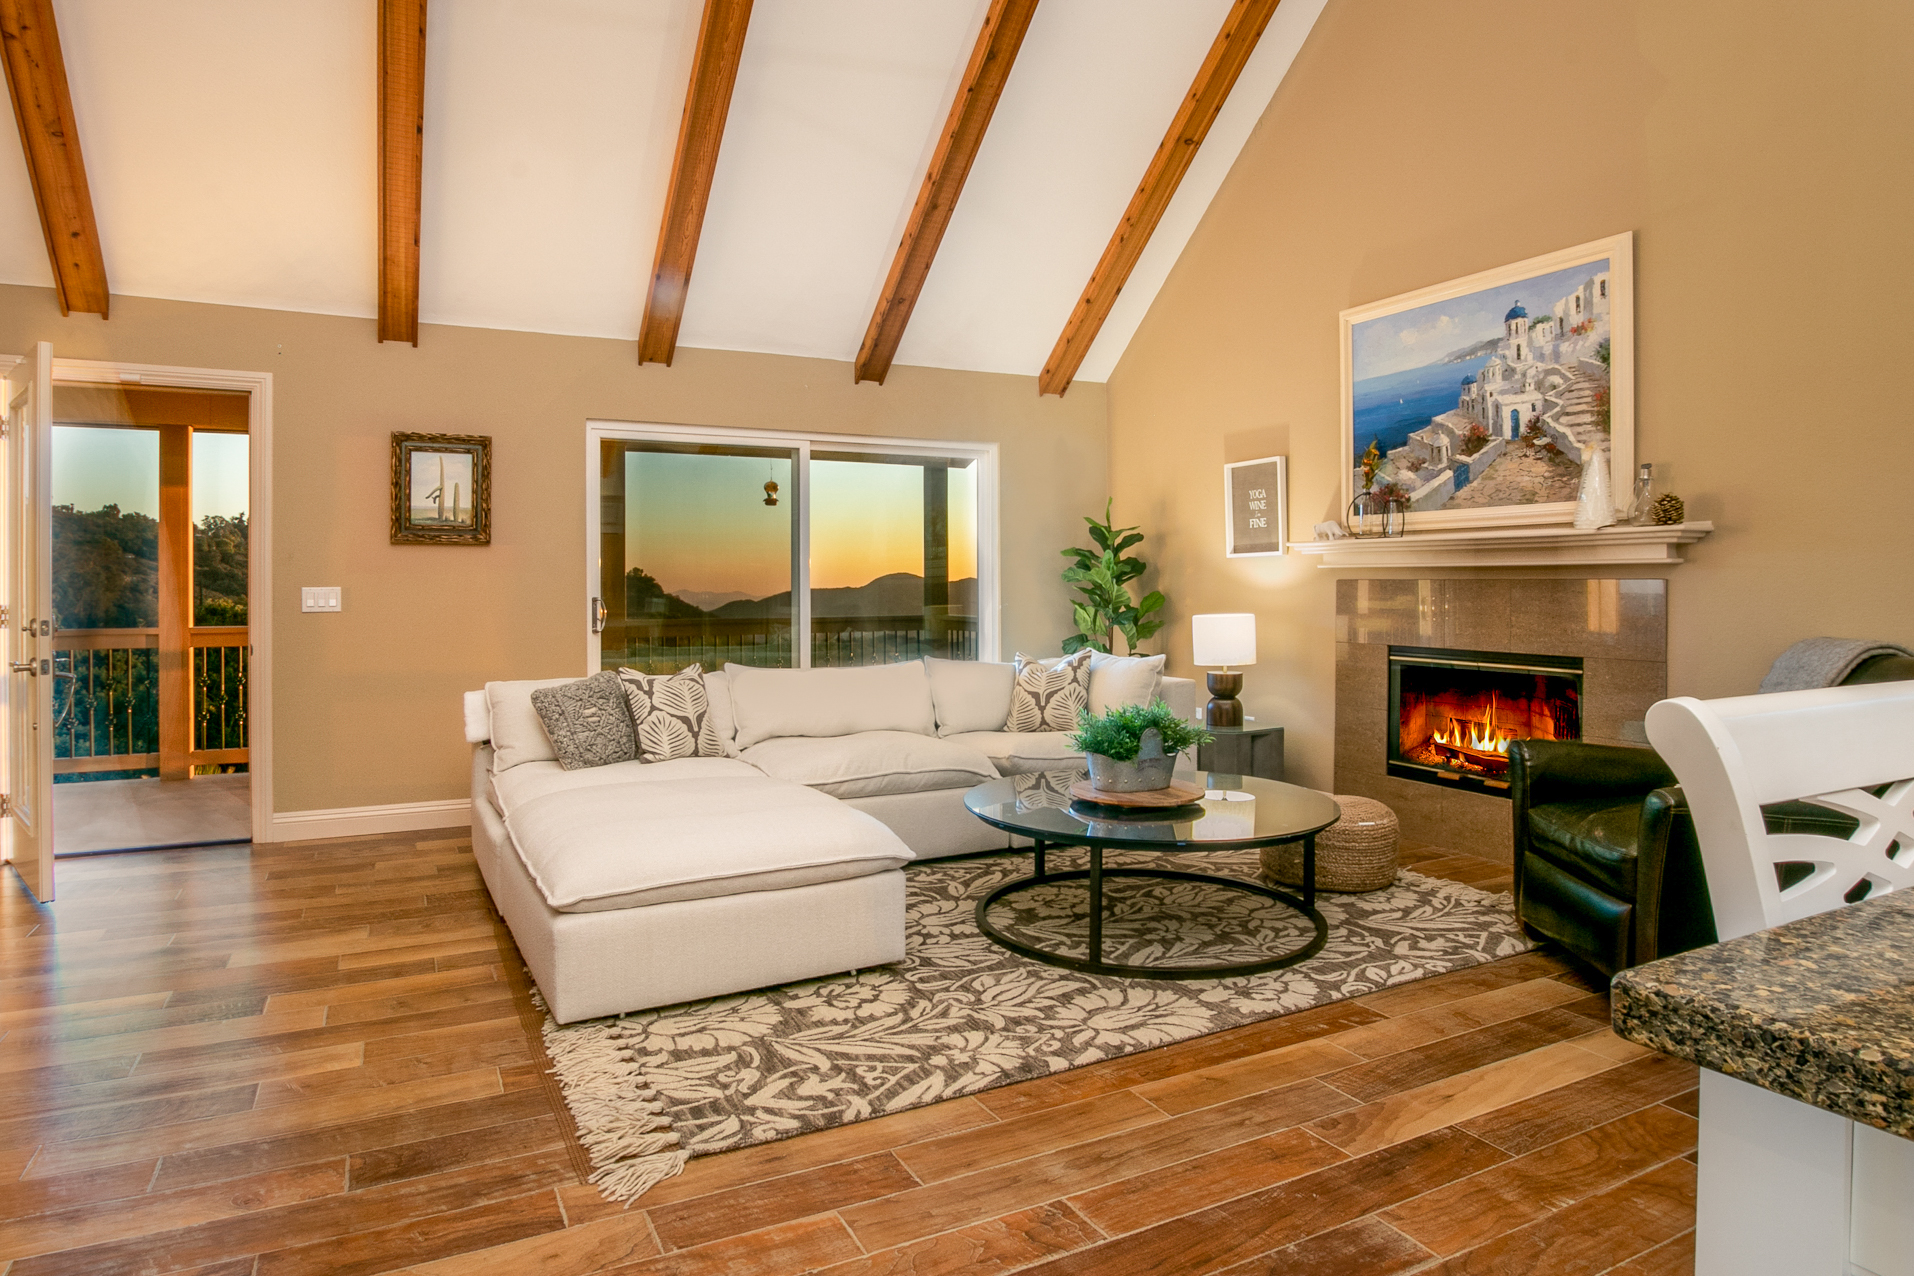 Fallbrook CA Vacation Rental Welcome to Fallbrook!